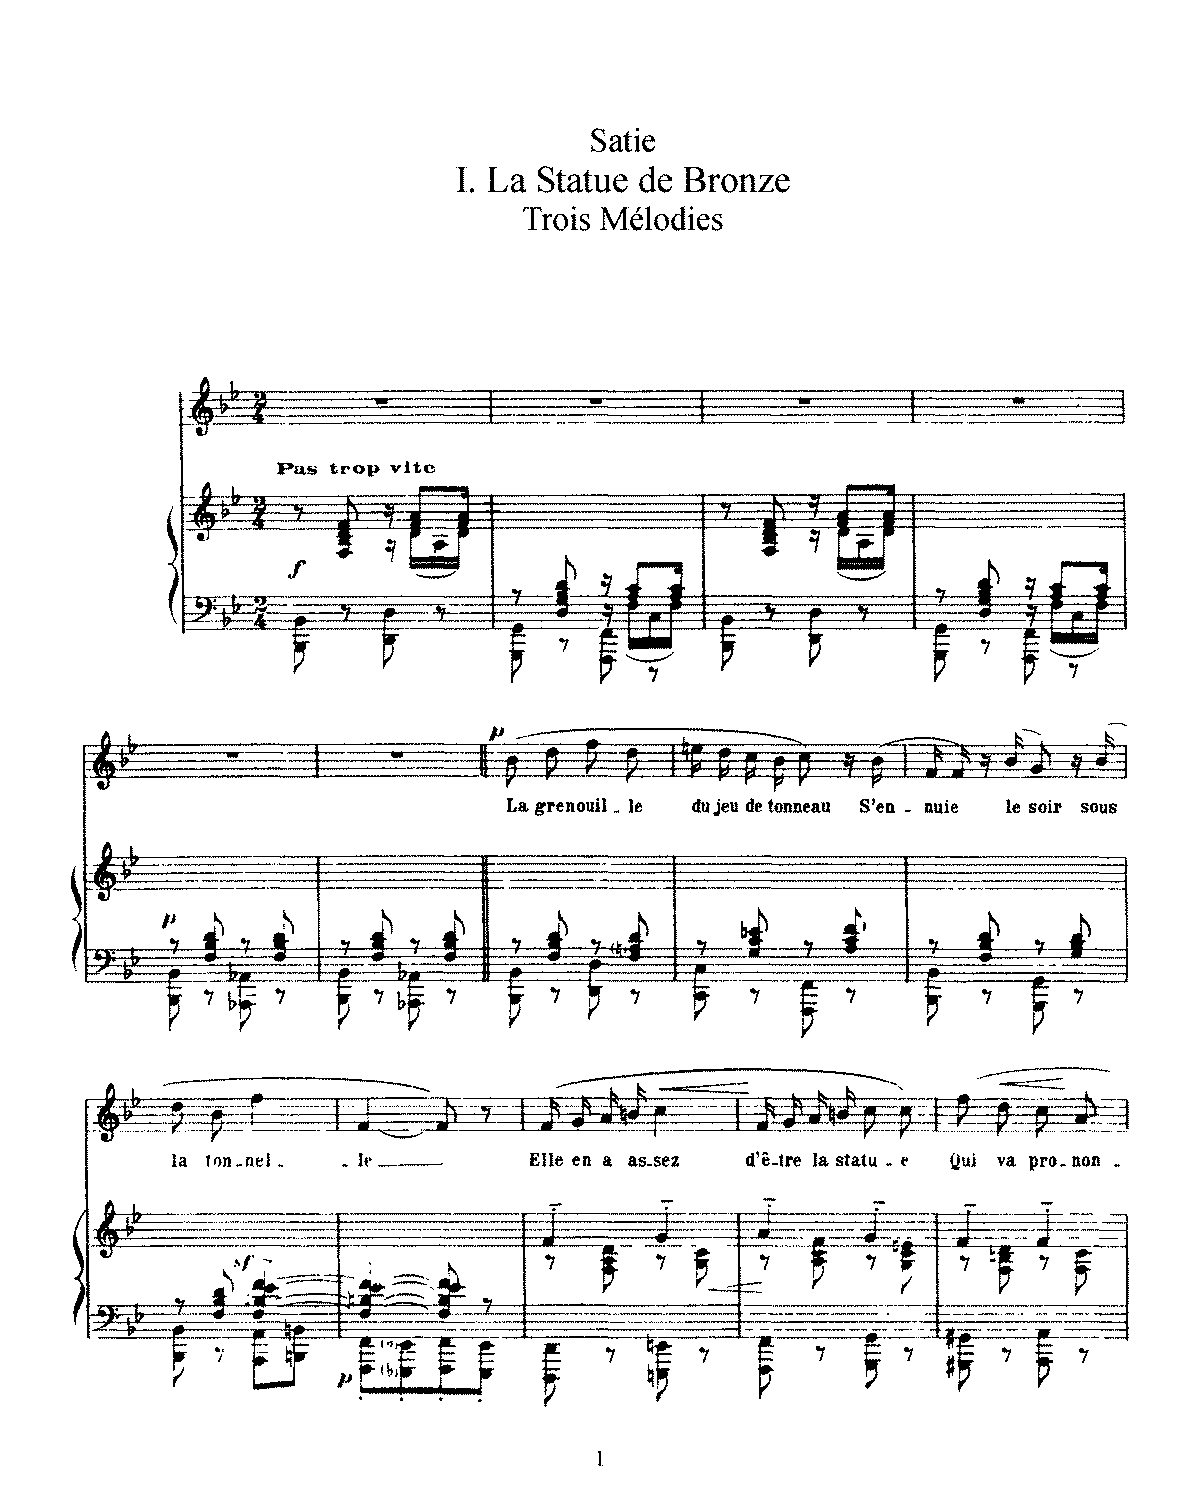 Satie - 3 Mèlodies (voice and piano).pdf